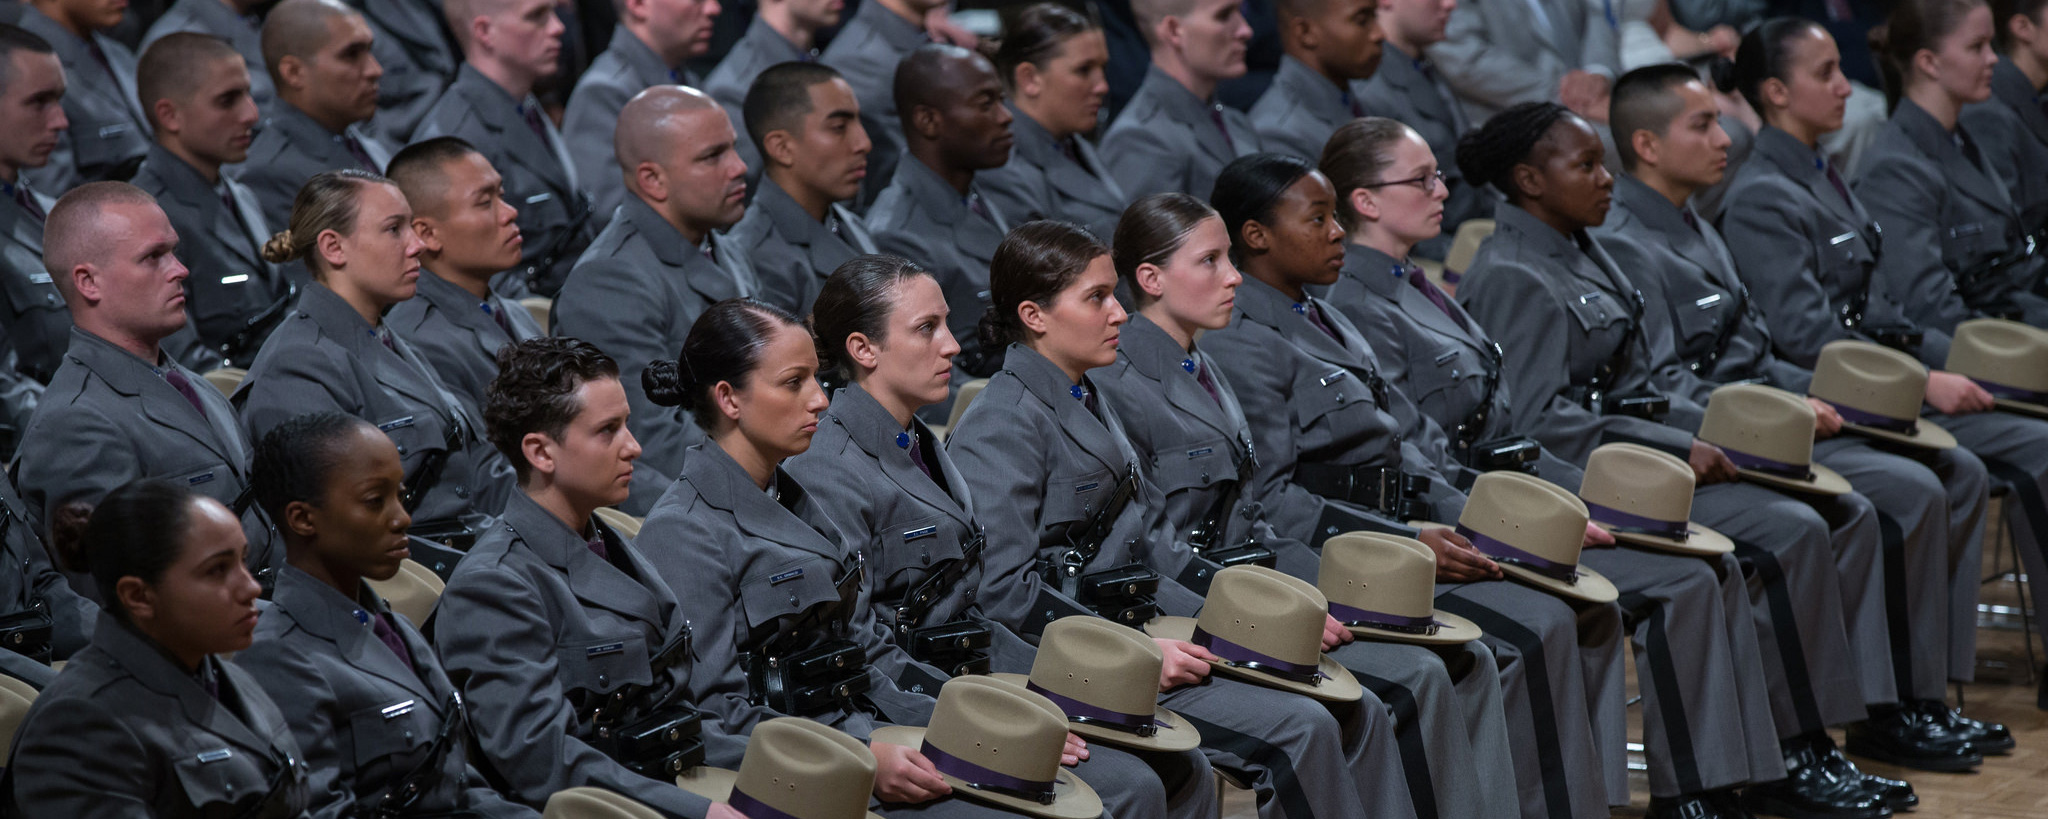 Find Out How to Become a New York State Trooper | The State of New York